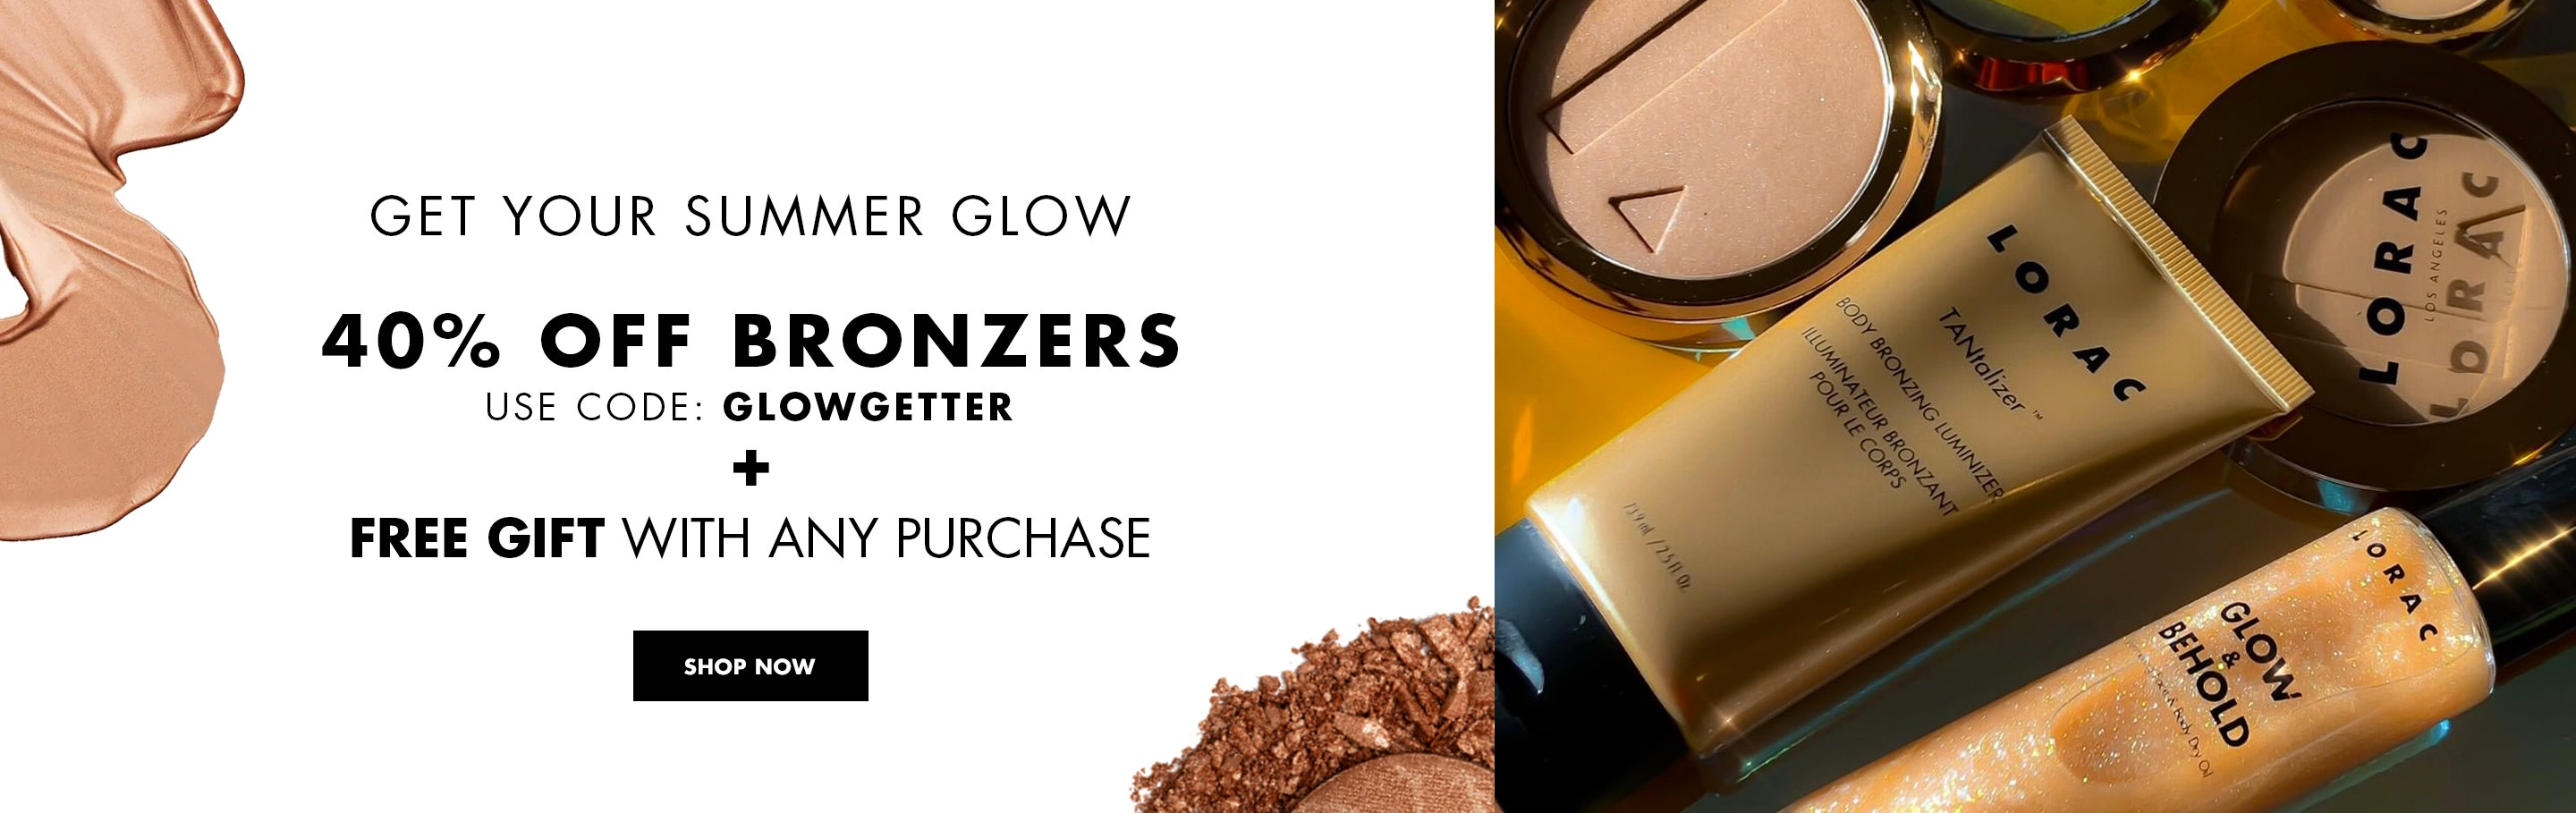 lorac | Get Your Summer Glow 40% off Bronzers Use Code: GLOWGETTER + Free Gift with any Purchase | SHOP NOW